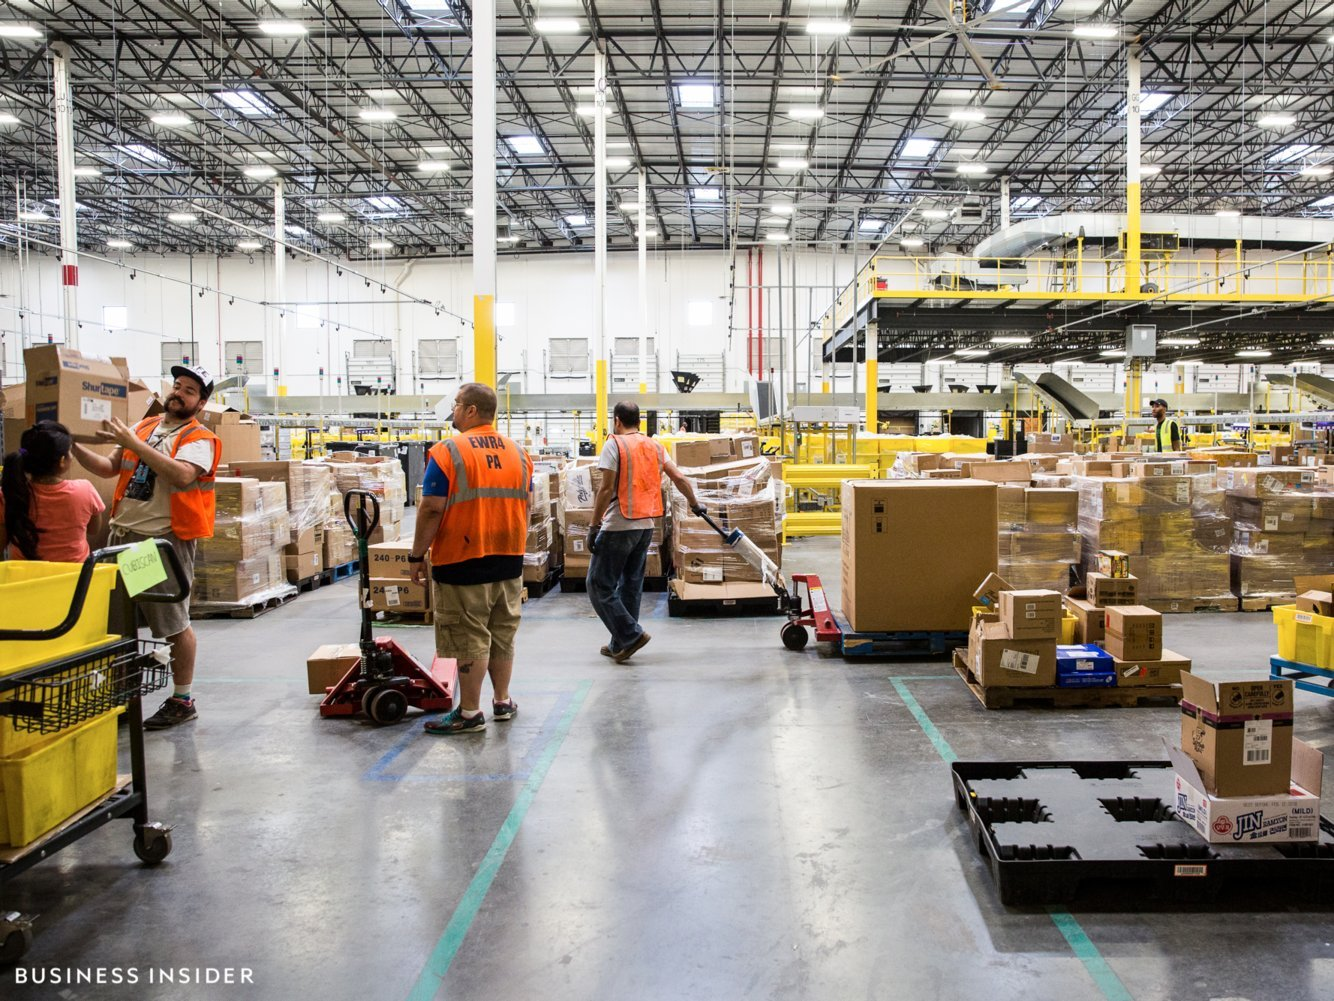 Amazon is holding a nationwide career fair to hire 30,000 permanent jobs — here's what a similar event was like at an Amazon warehouse in 2017